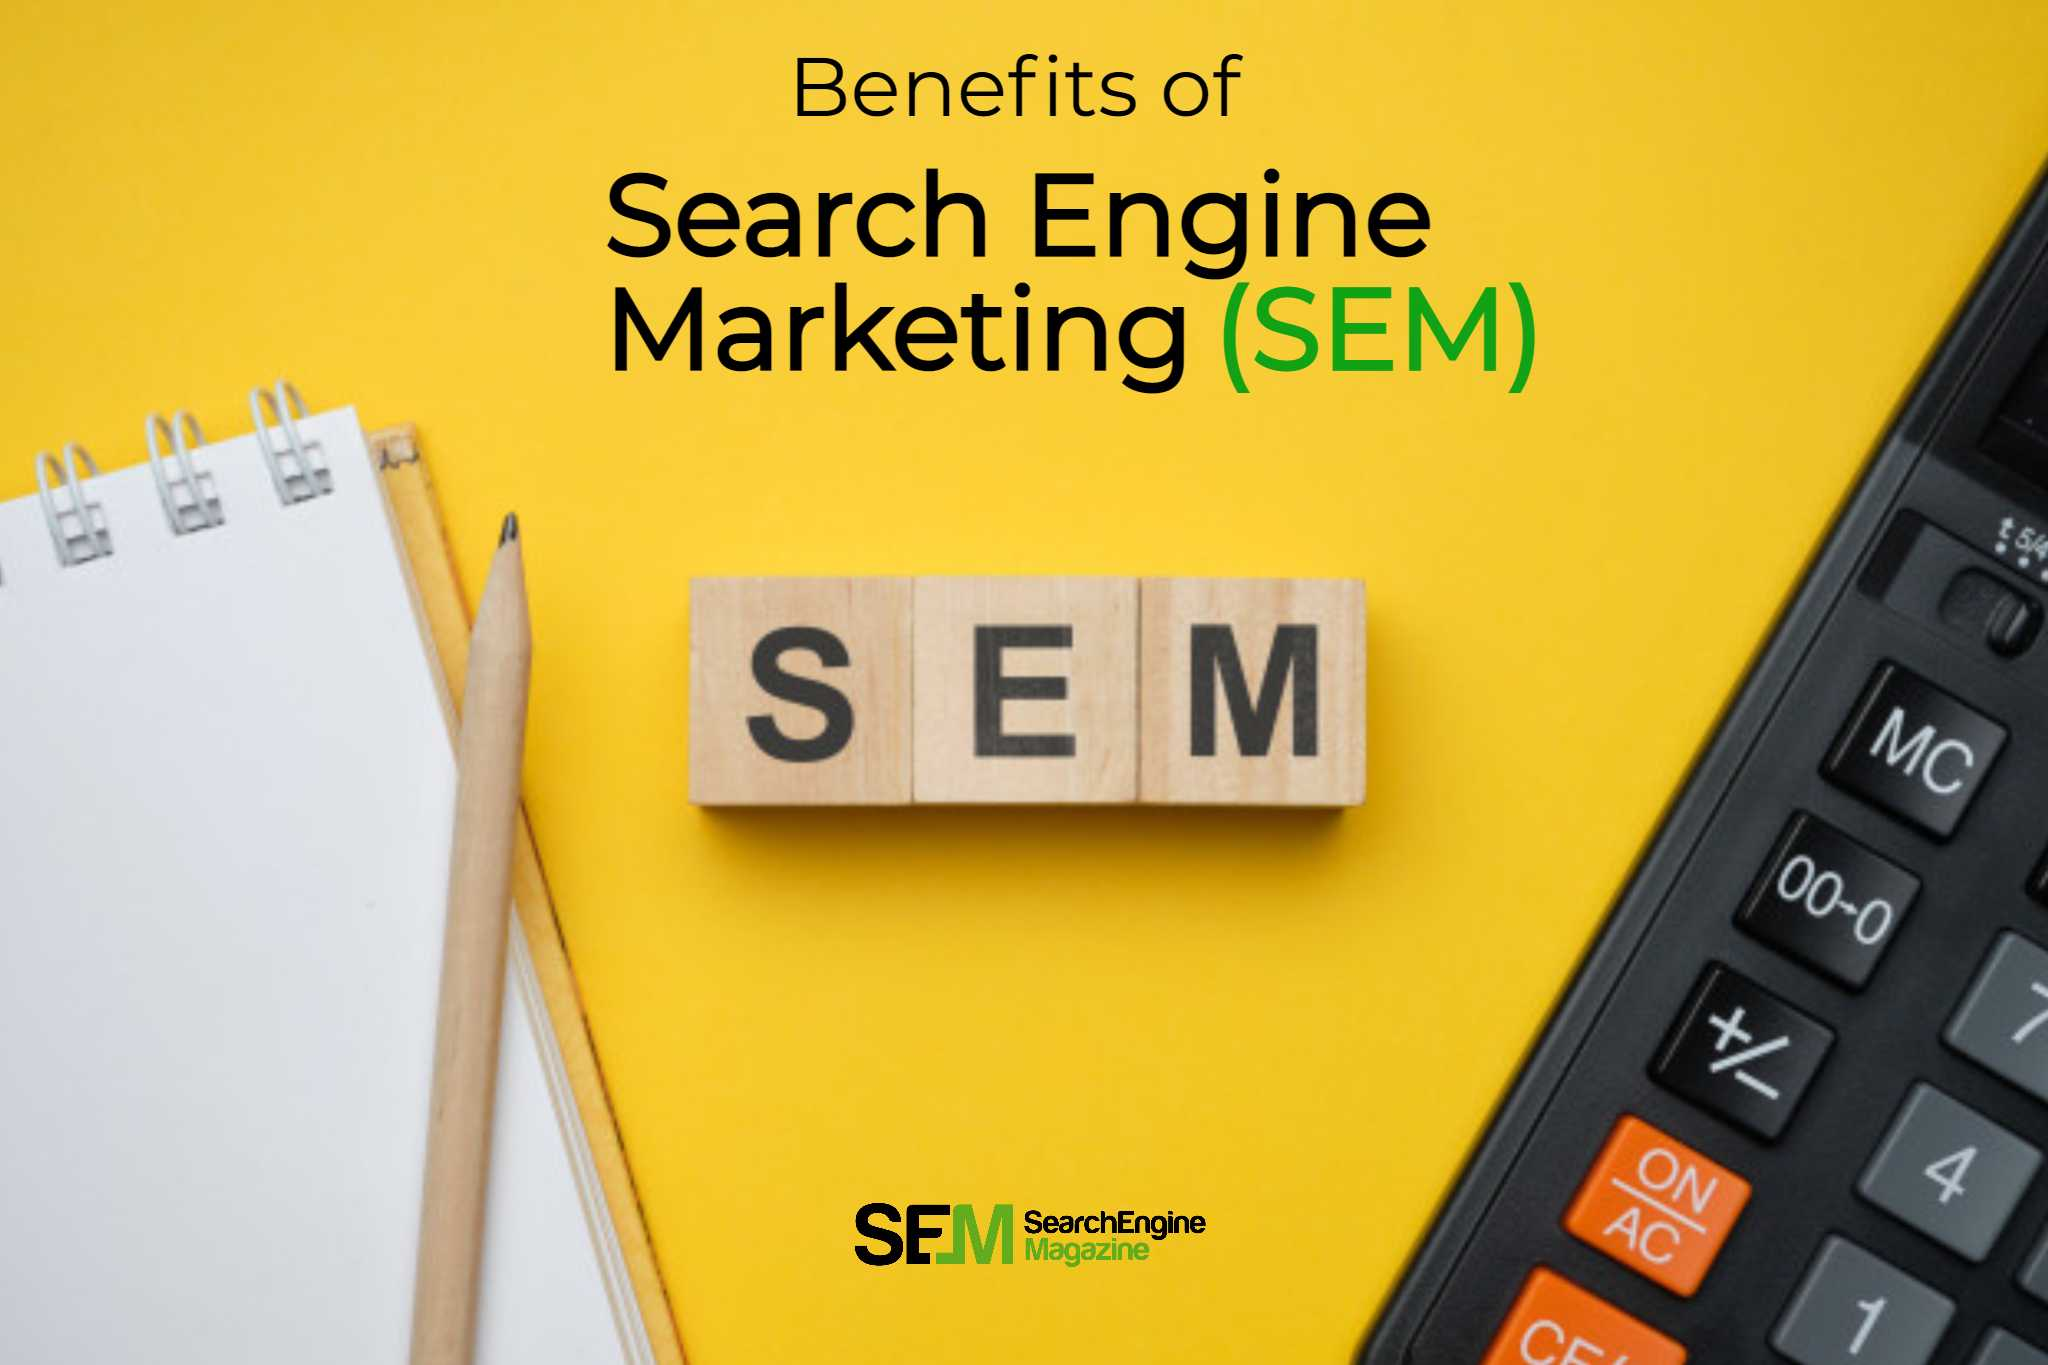 Which of the following is a benefit of Search Engine Marketing (SEM)